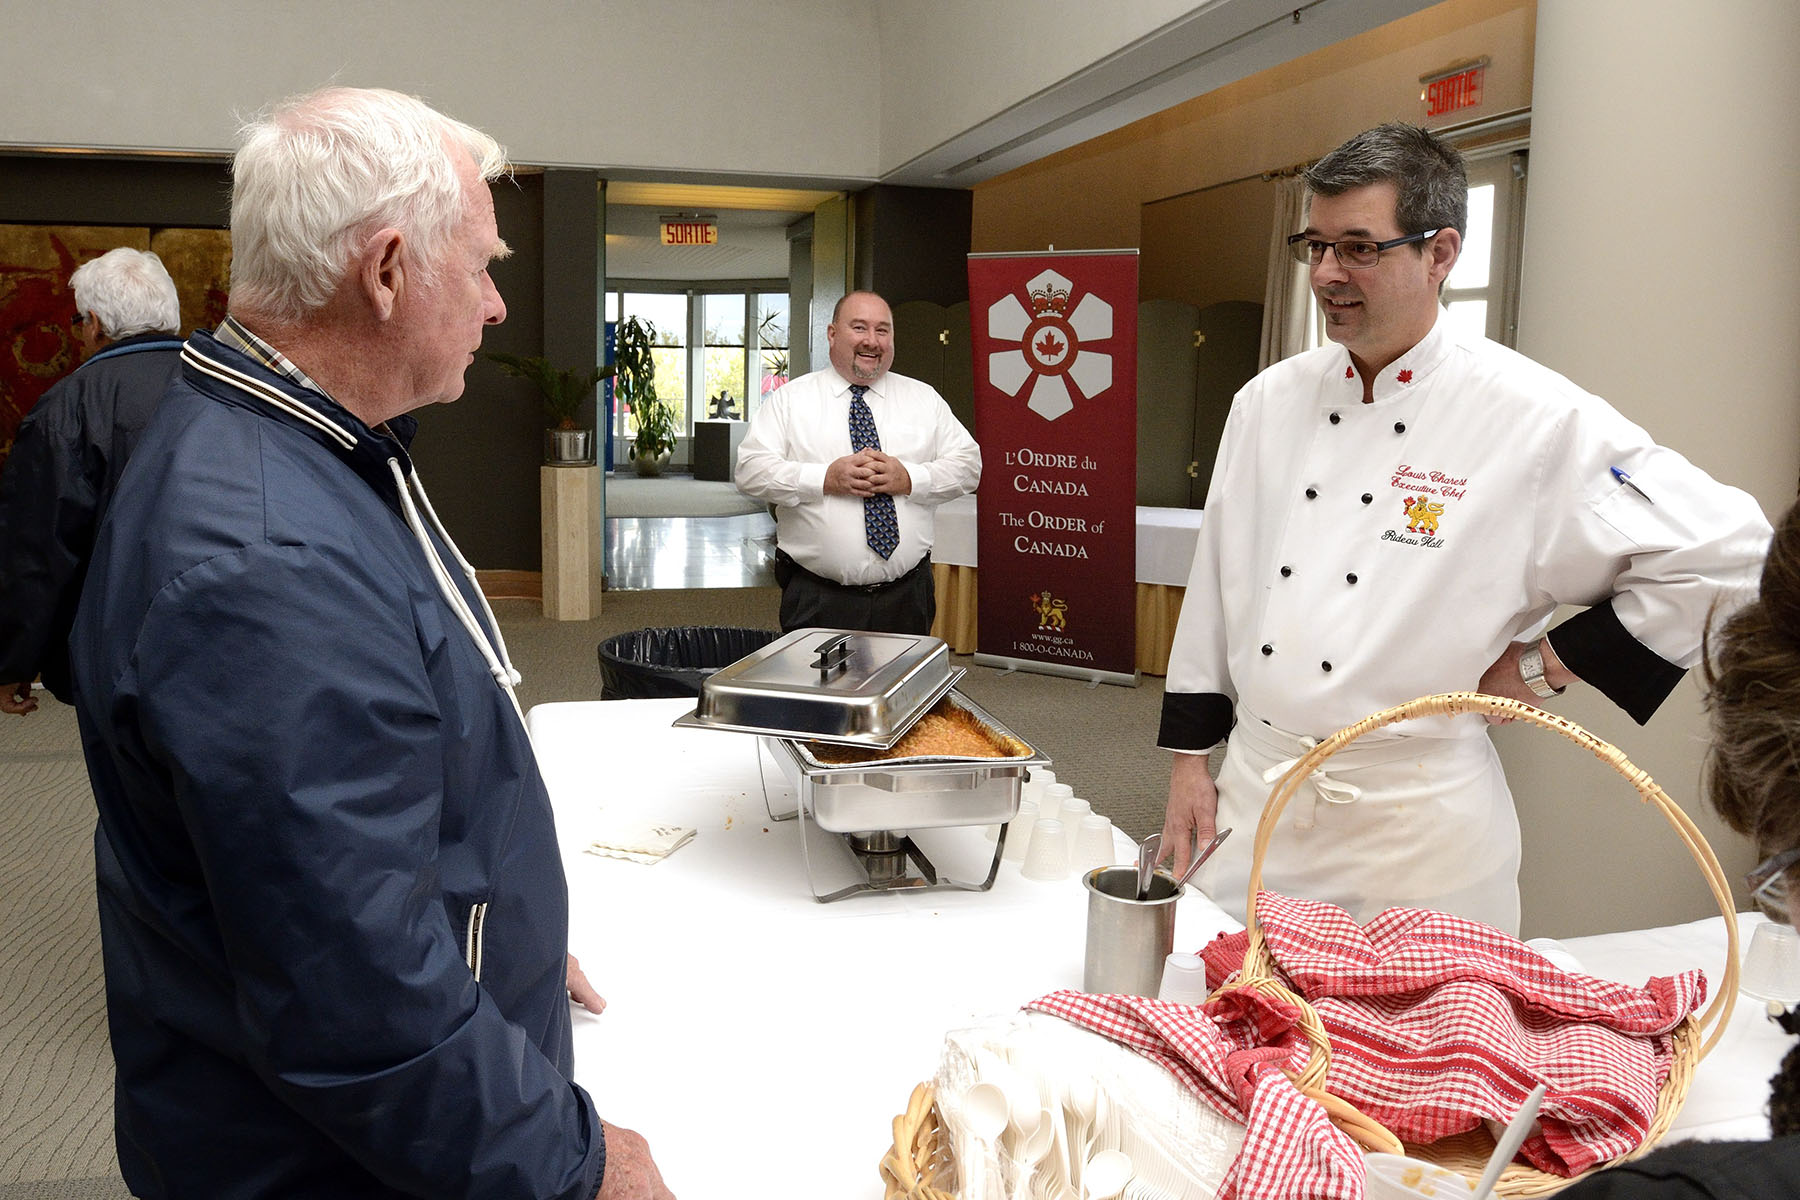 Inside the Governor General's Residence, visitors were able to taste old-fashioned baked beans made by the official residence chefs using an ancient recipe.